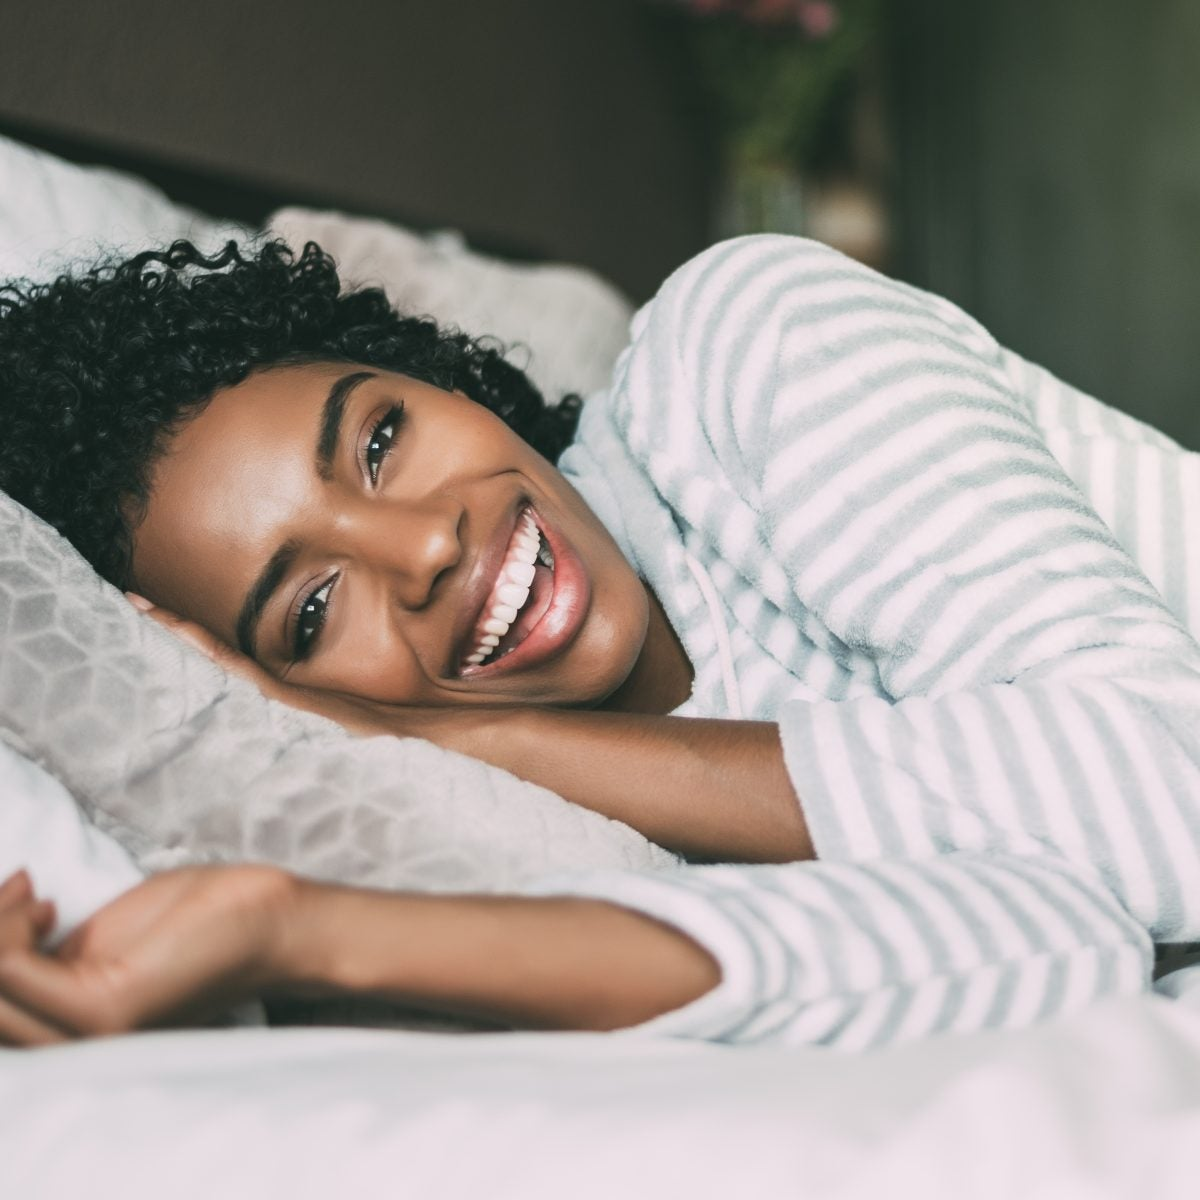 5 Ways To Prevent Hair Loss While You're Sleeping, According To Experts